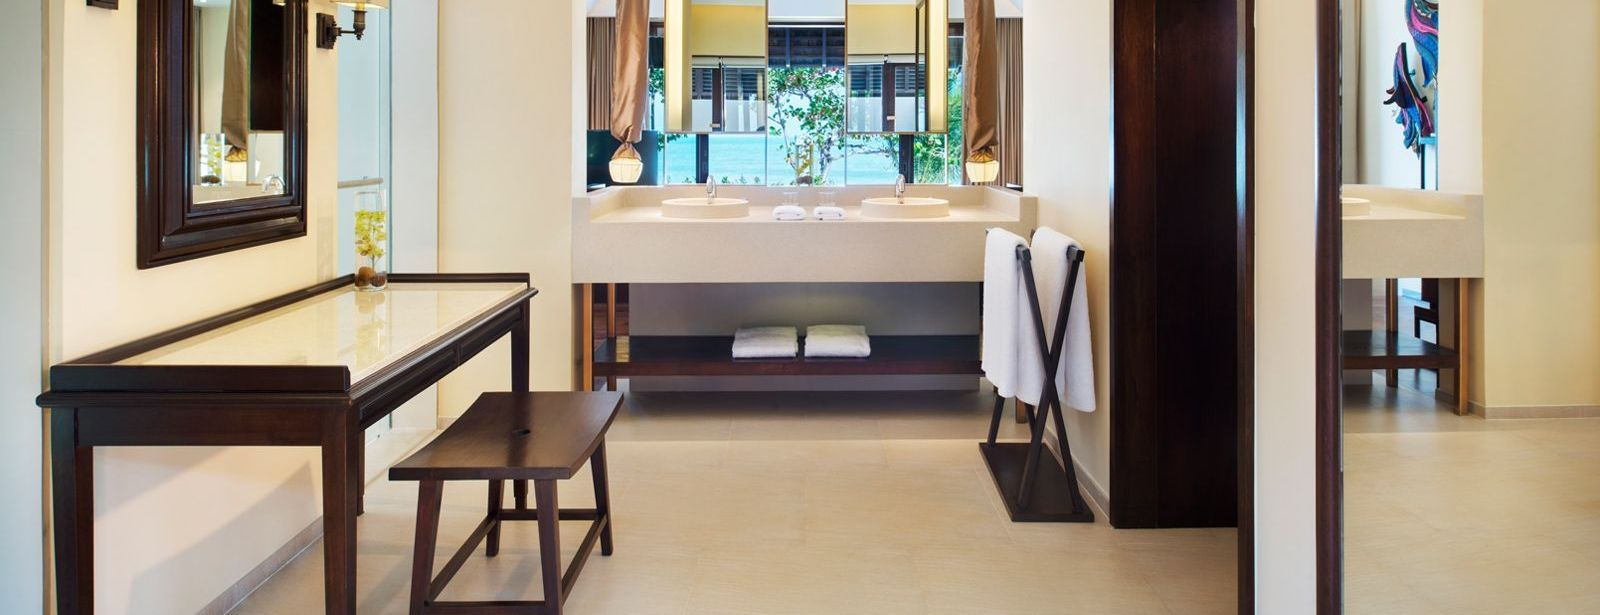 Tropical Pool Villa Bathroom